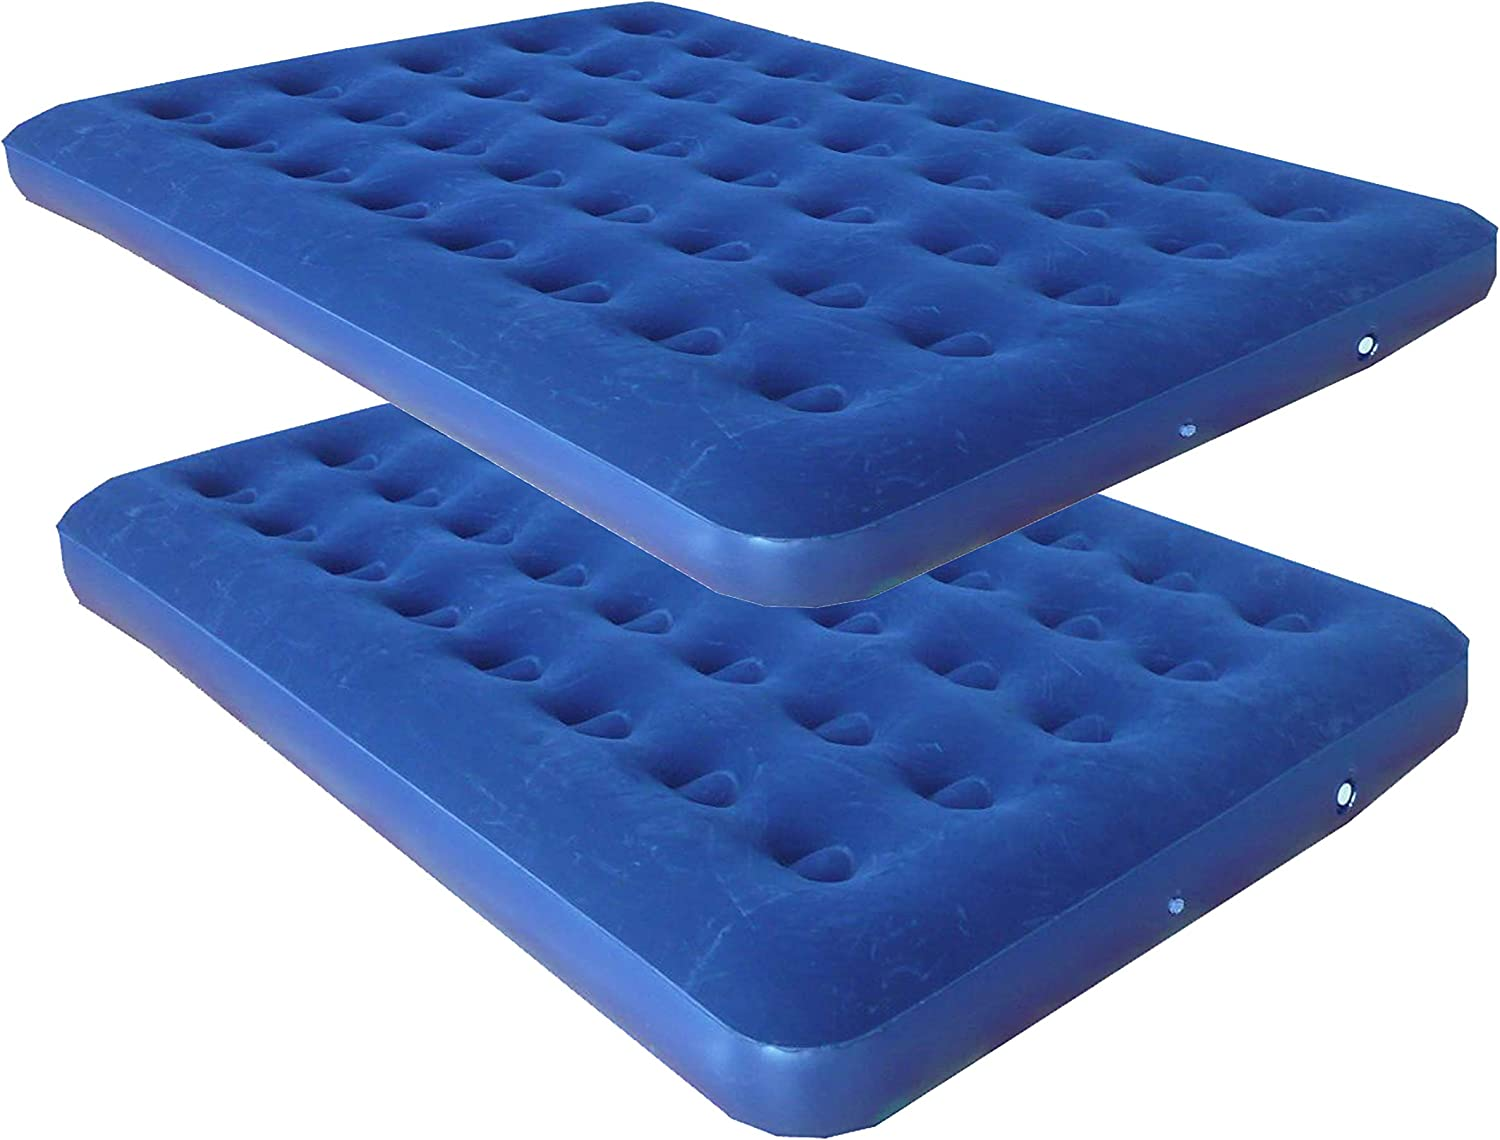 Zaltana Nylon Fabric Single Size AIR Mattress with Building in Pillow Size: 77 by 28 Red//Blue AMR